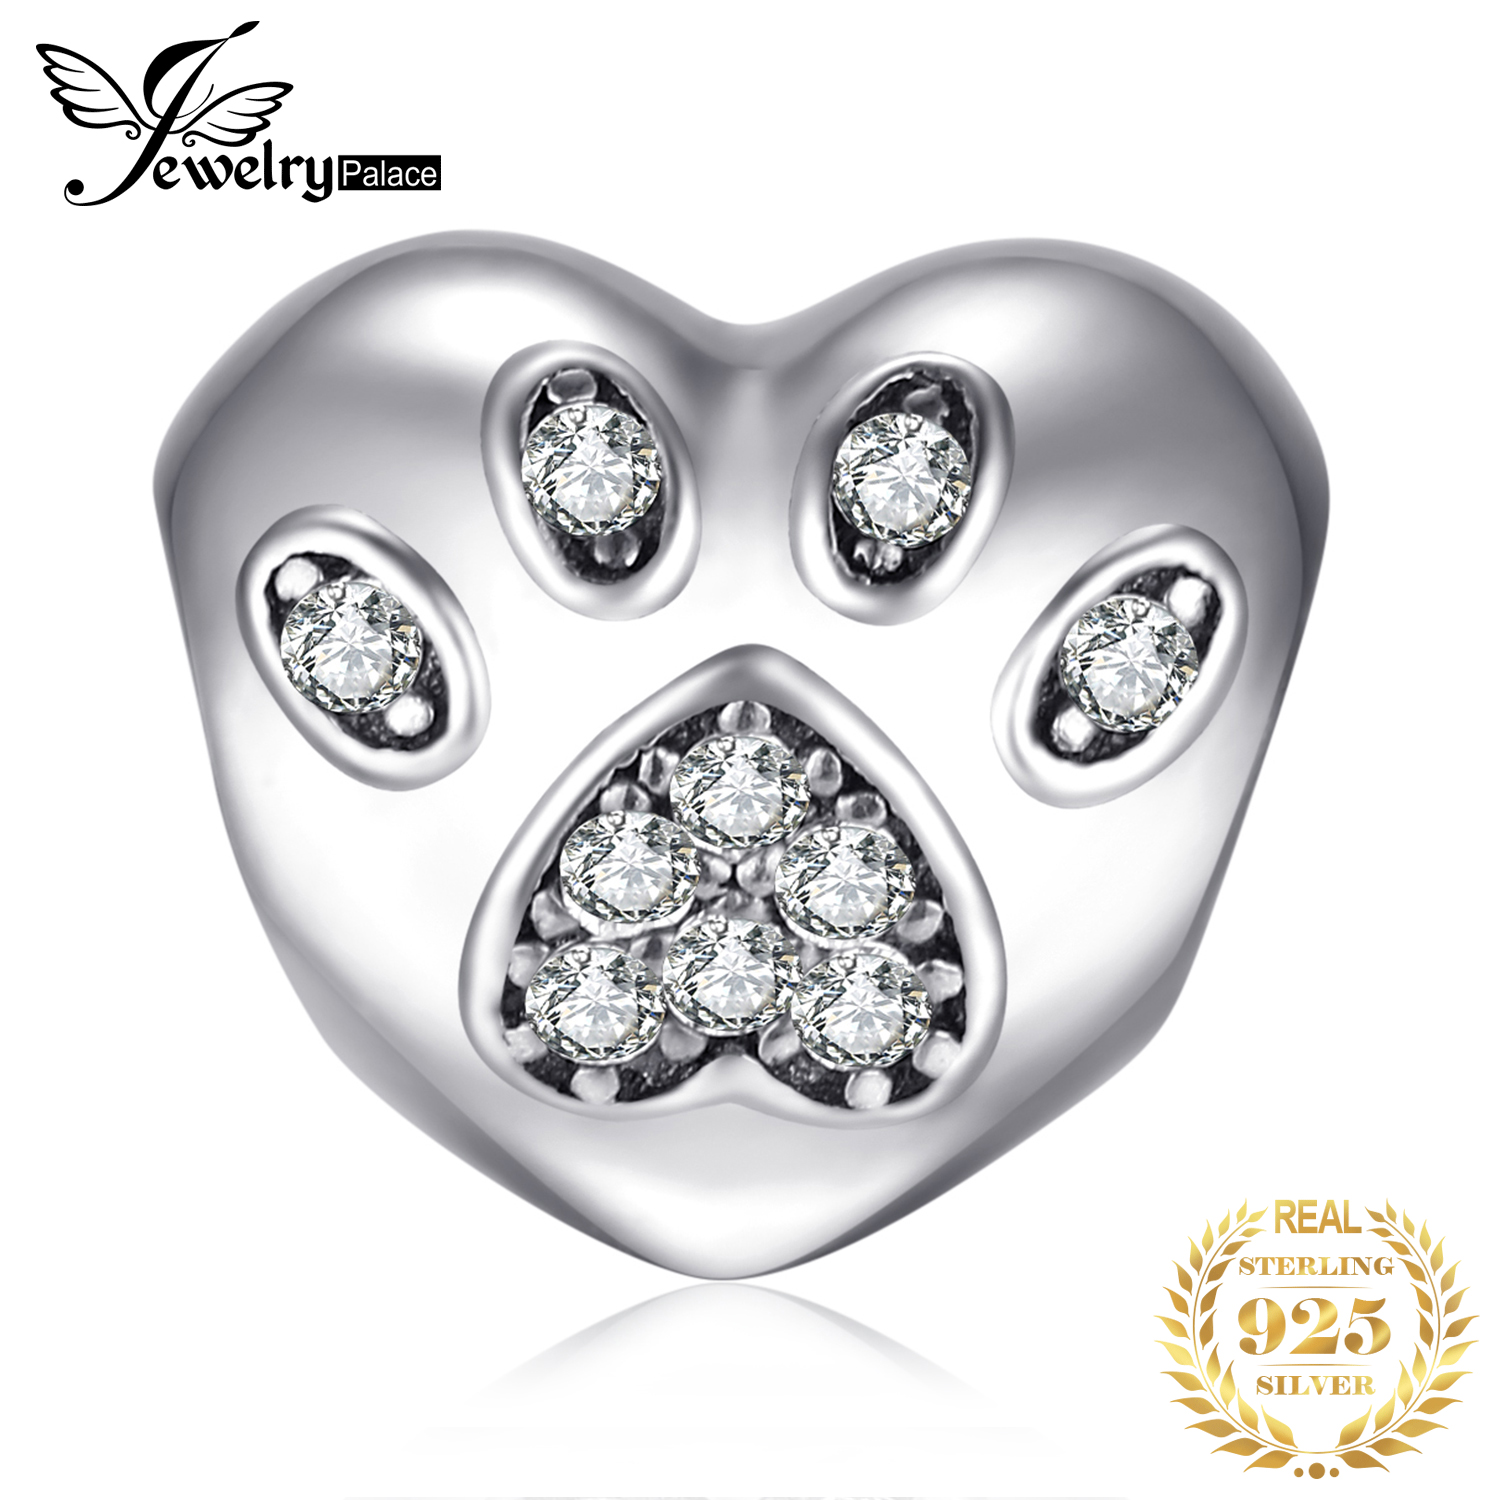 JewelryPalace Puppy Palm 925 Sterling Silver Beads Charms Silver 925 Original For Bracelet Silver 925 original Jewelry Making in Beads from Jewelry Accessories